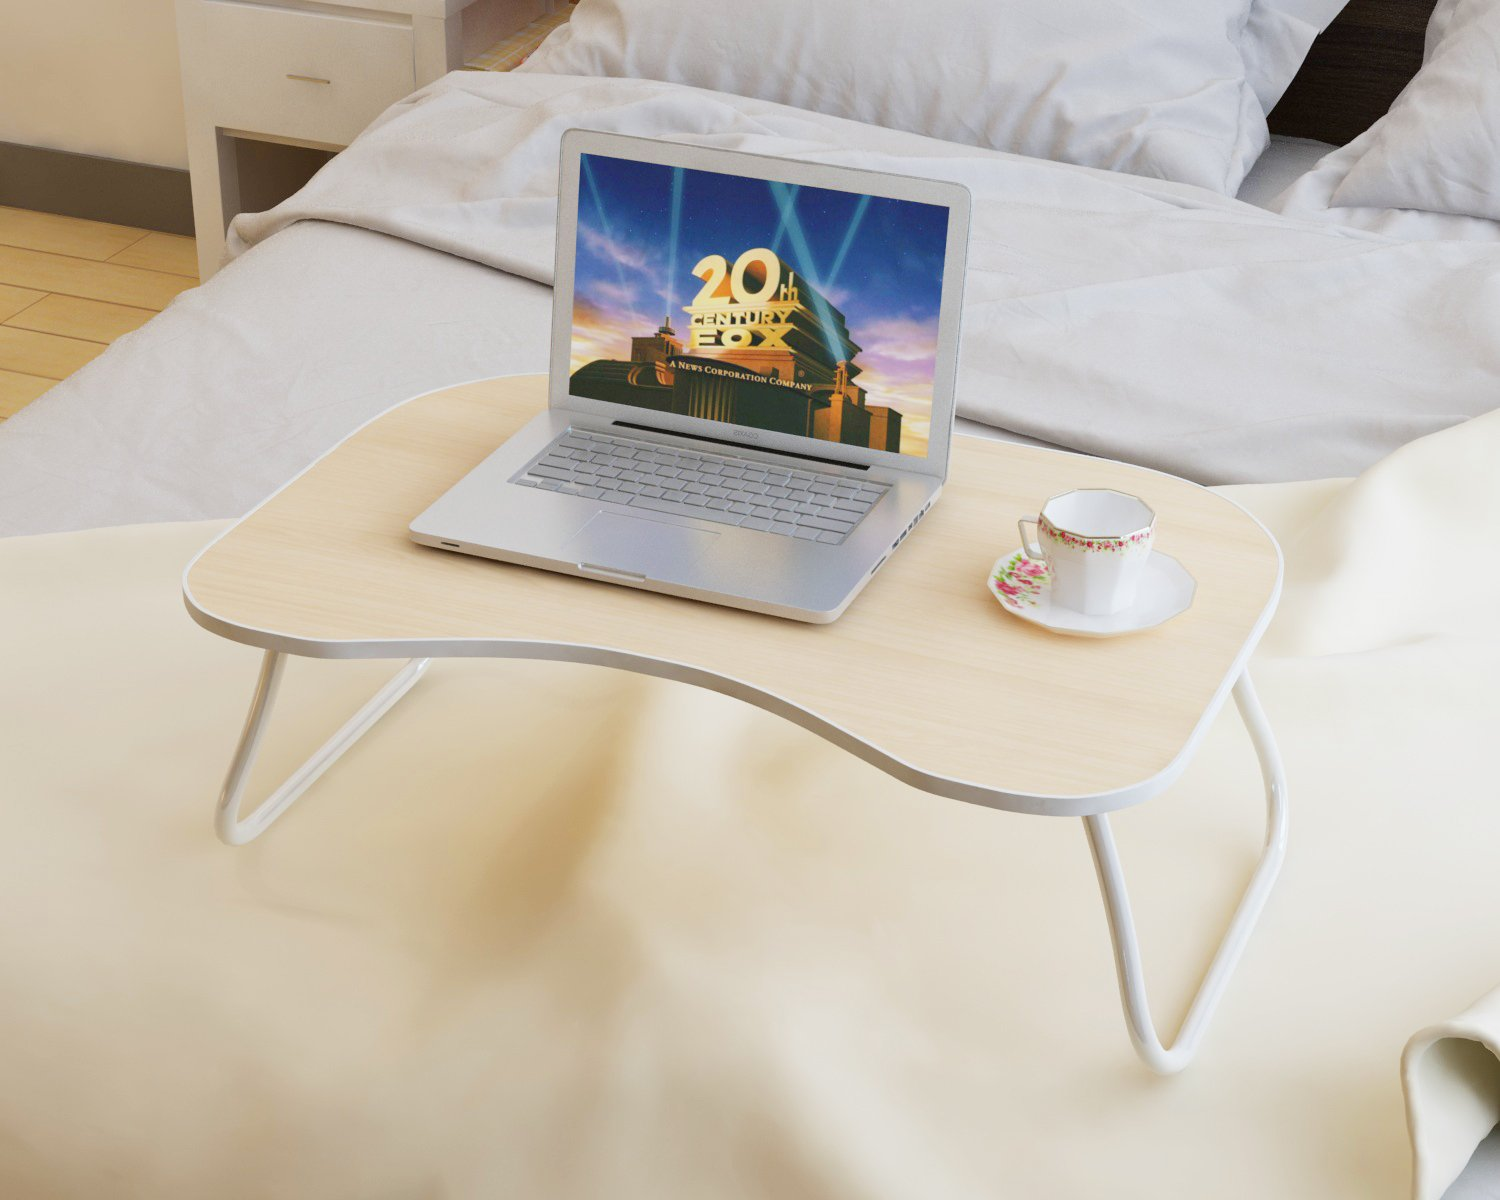 """Homebi Lap Desk Tray Table Laptop Stand Portable Bed Desk Breakfast Tray for Bed Couch and Sofa with MDF Top Board and Foldable Metal Legs (9.65""""H, White Oak)"""